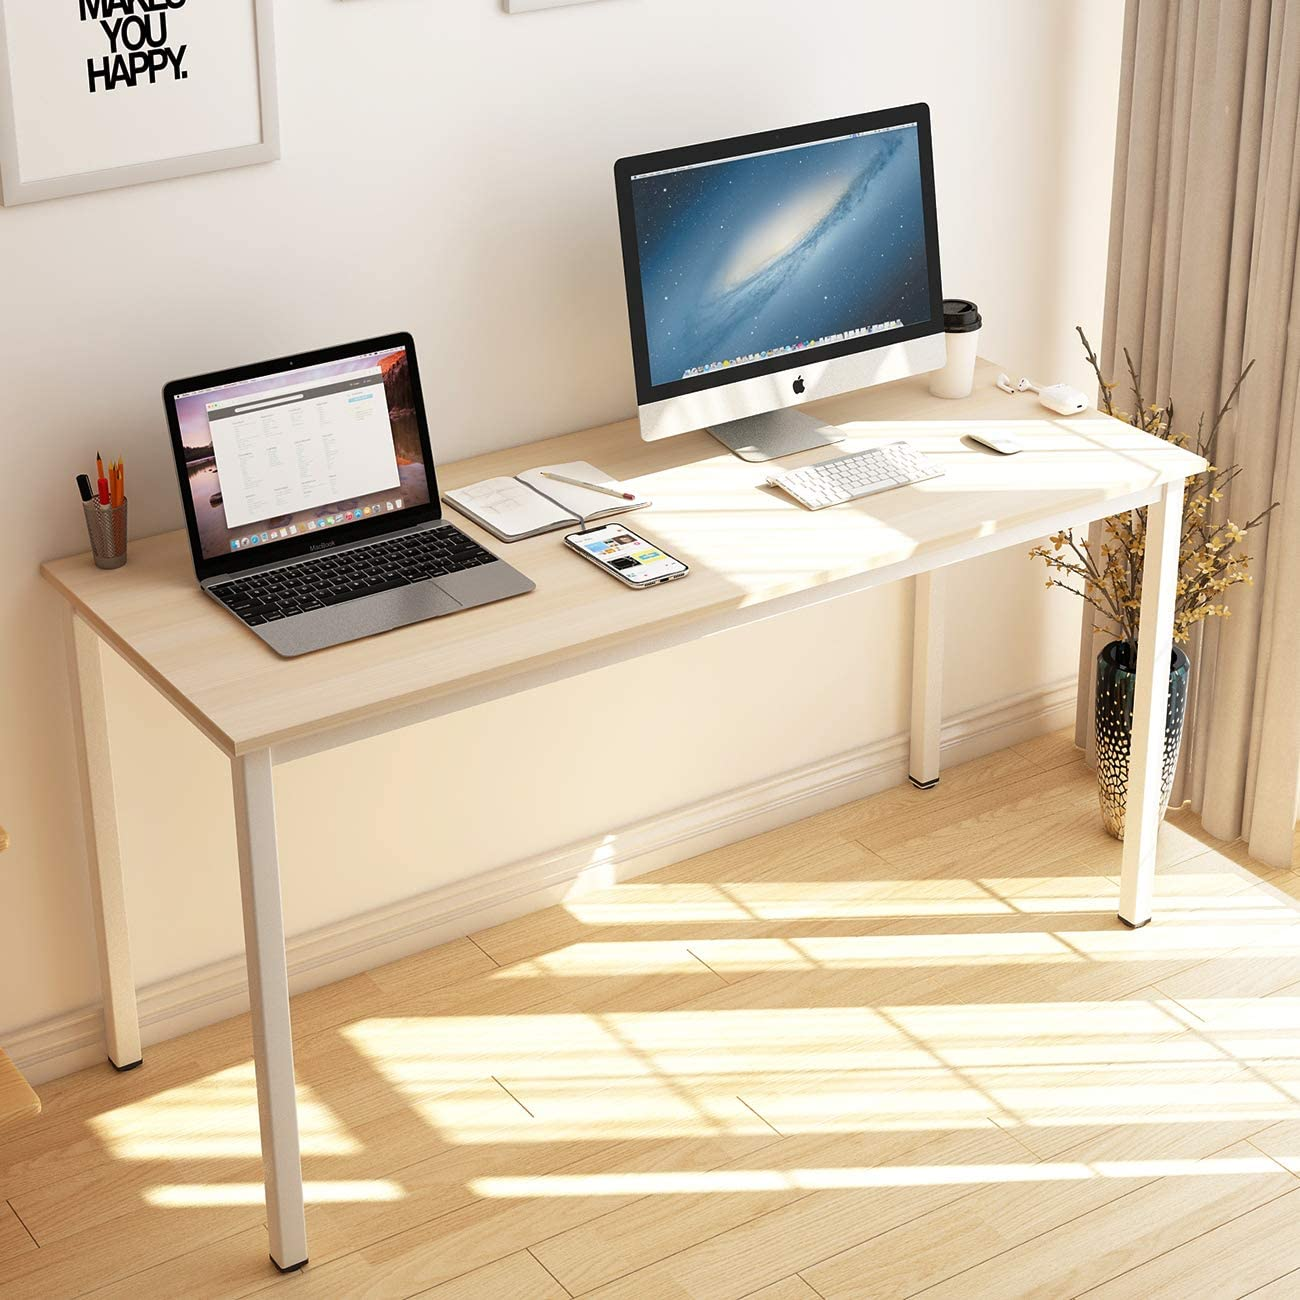 SogesHome Computer Desk 63 inches Large Desk Writing Desk with BIFMA Certification Workstation Office Desk, White Maple, NSDUS-GCP2AC3-160MO